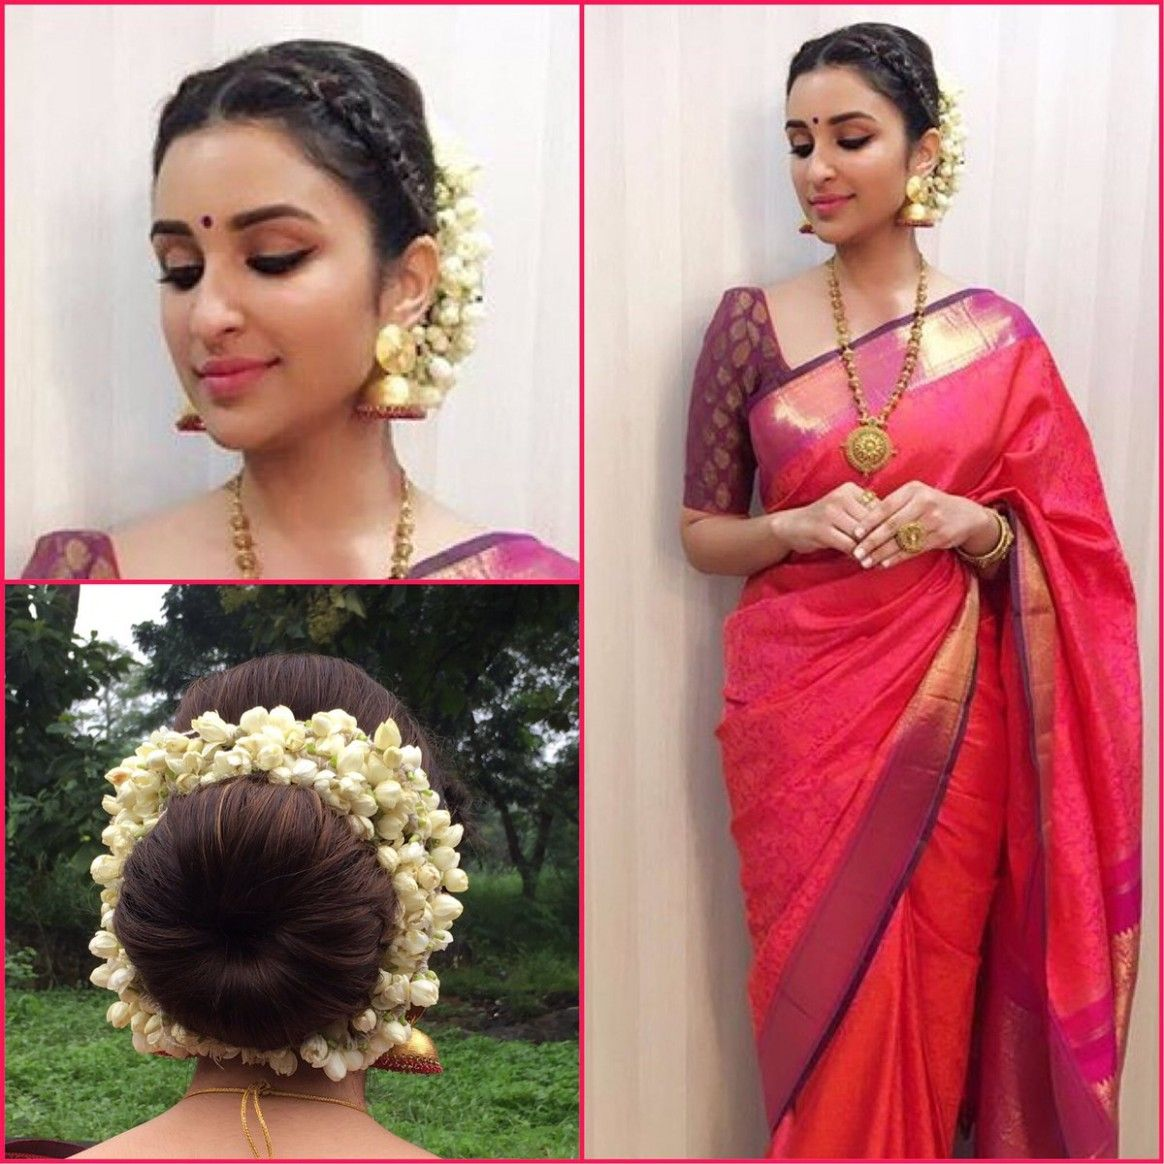 Hairstyle On Lehenga For Thin Hair In 2020 Indian Hairstyles Saree Hairstyles Traditional Hairstyle